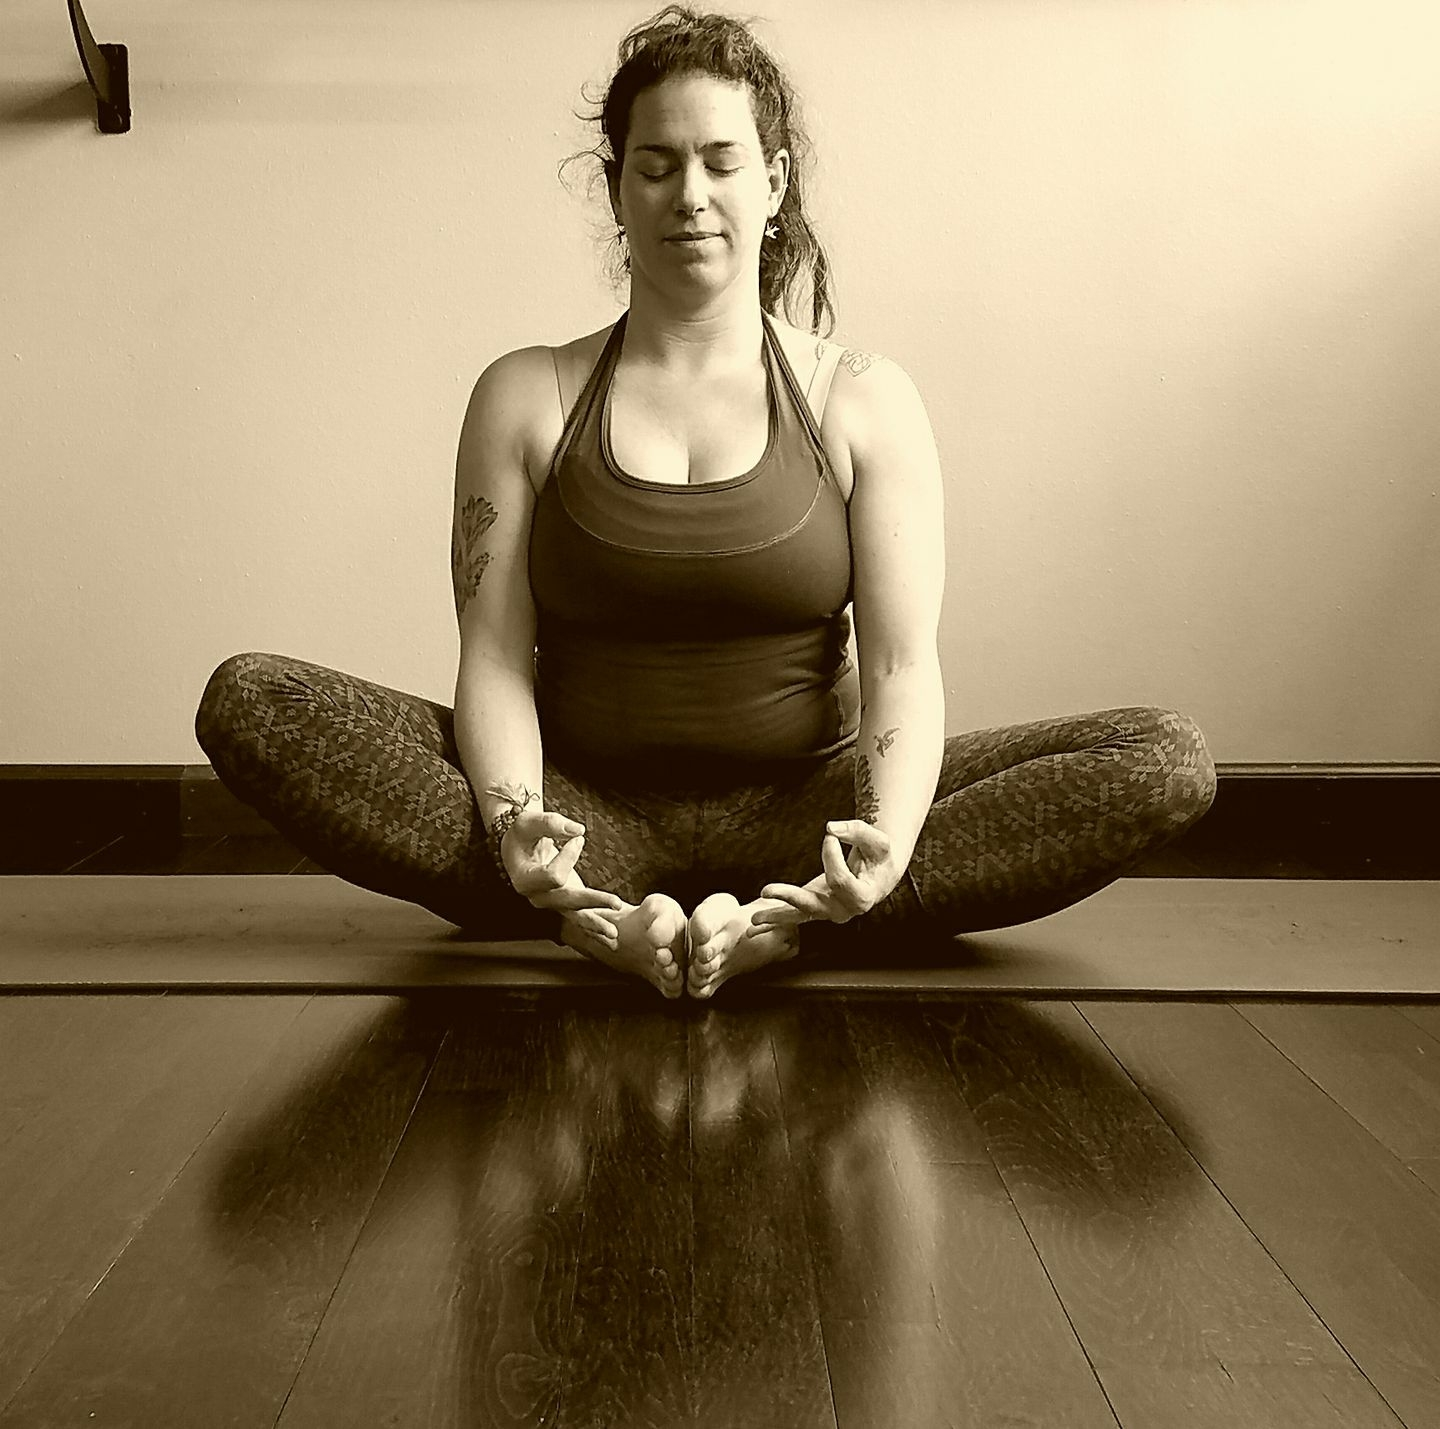 About the host    Kate Crouch has a B.A in Integrative Studies from Warren Wilson College, is a certified Yoga instructor, RYT-200hr, and has completed the Forest for Every Classroom teaching program. She began practicing and studying yoga, in her home city of  Philadelphia, in 2000. Since then she has explored many of the diverse yoga lineages. Kate has training in Kundalini yoga from 7 Centers Yoga Arts in Sedona, AZ and Hatha yoga from Anahata Power Yoga here in Missoula.   She is a teaching artist for SPARKARTS in Mindfulness Arts and is pursuing her Master's degree in Art Integration at the U of M.  Her passion for teaching is rooted in her belief that the practices of Mindfulness  prepares one for the challenges of life. Her classes aim to be accessible, rejuvenating and full of joy.